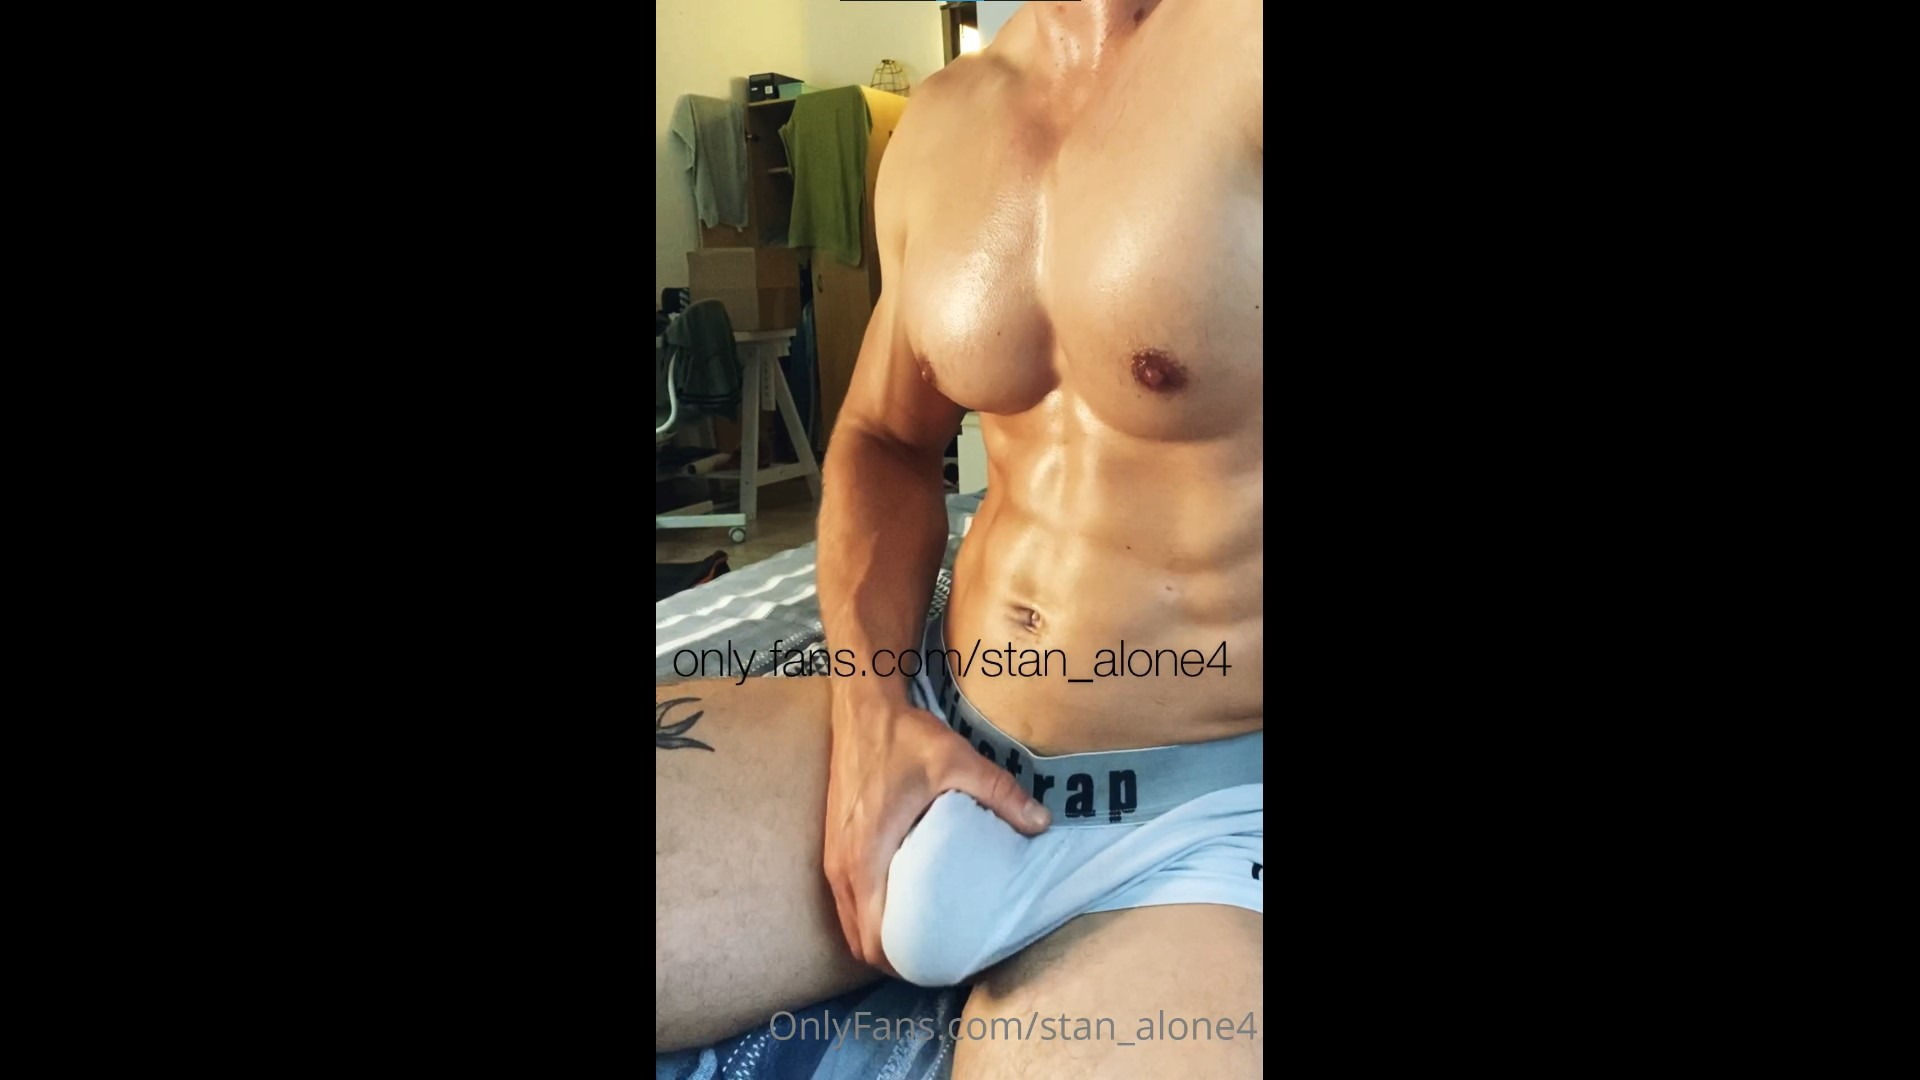 Jerking off and cumming over my hot sweaty body - Stan_alone4